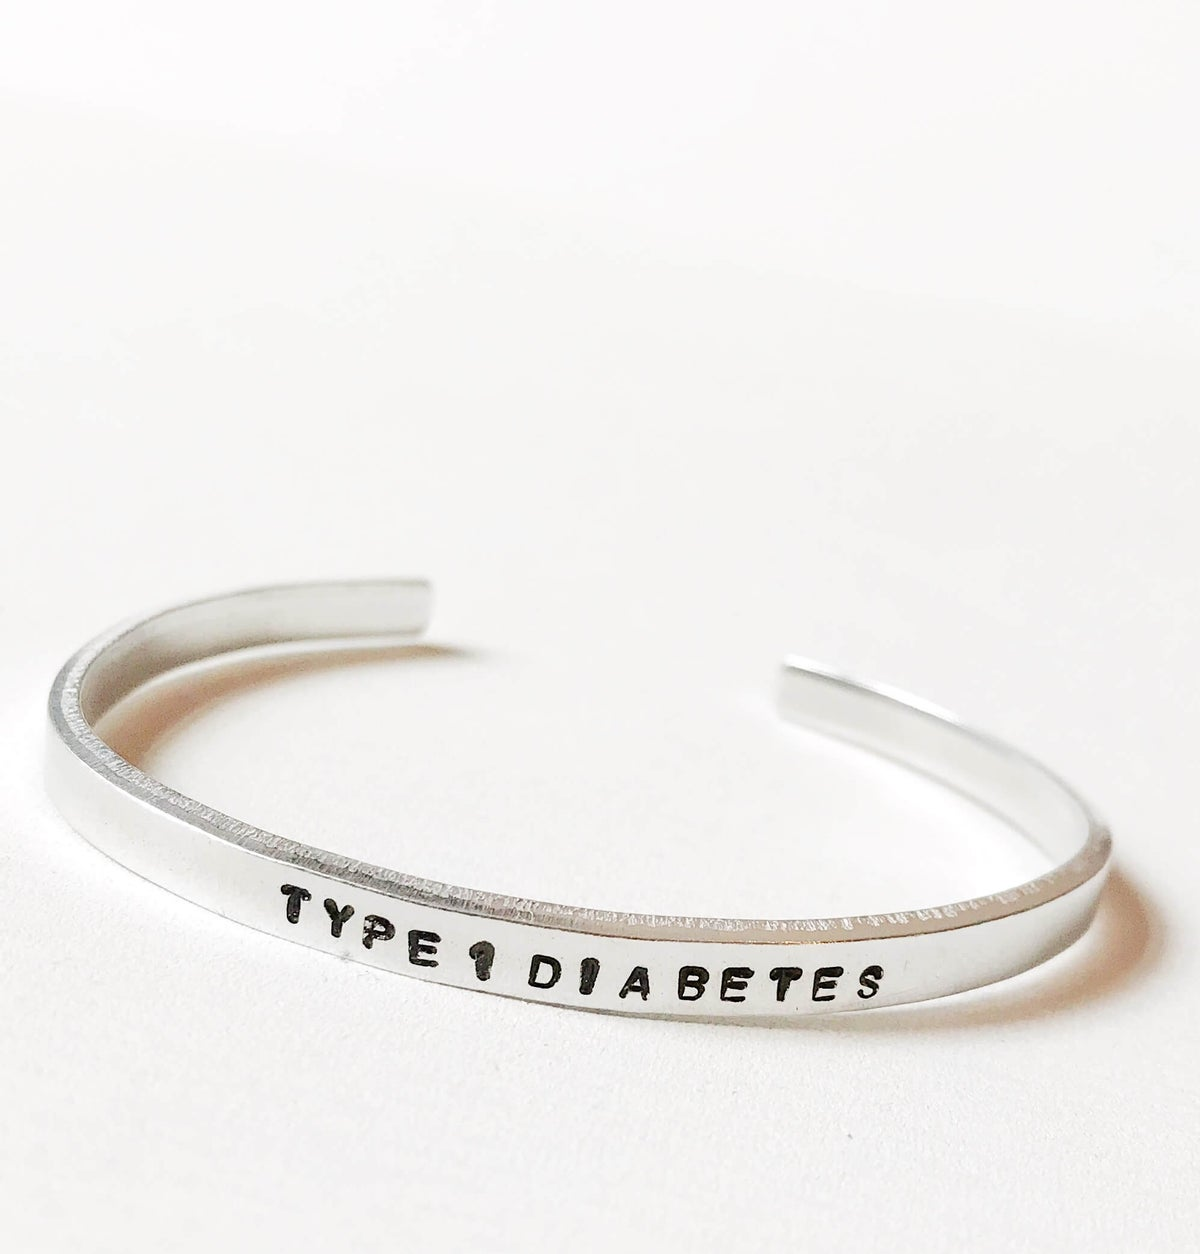 Diabetes Accessories Stickers